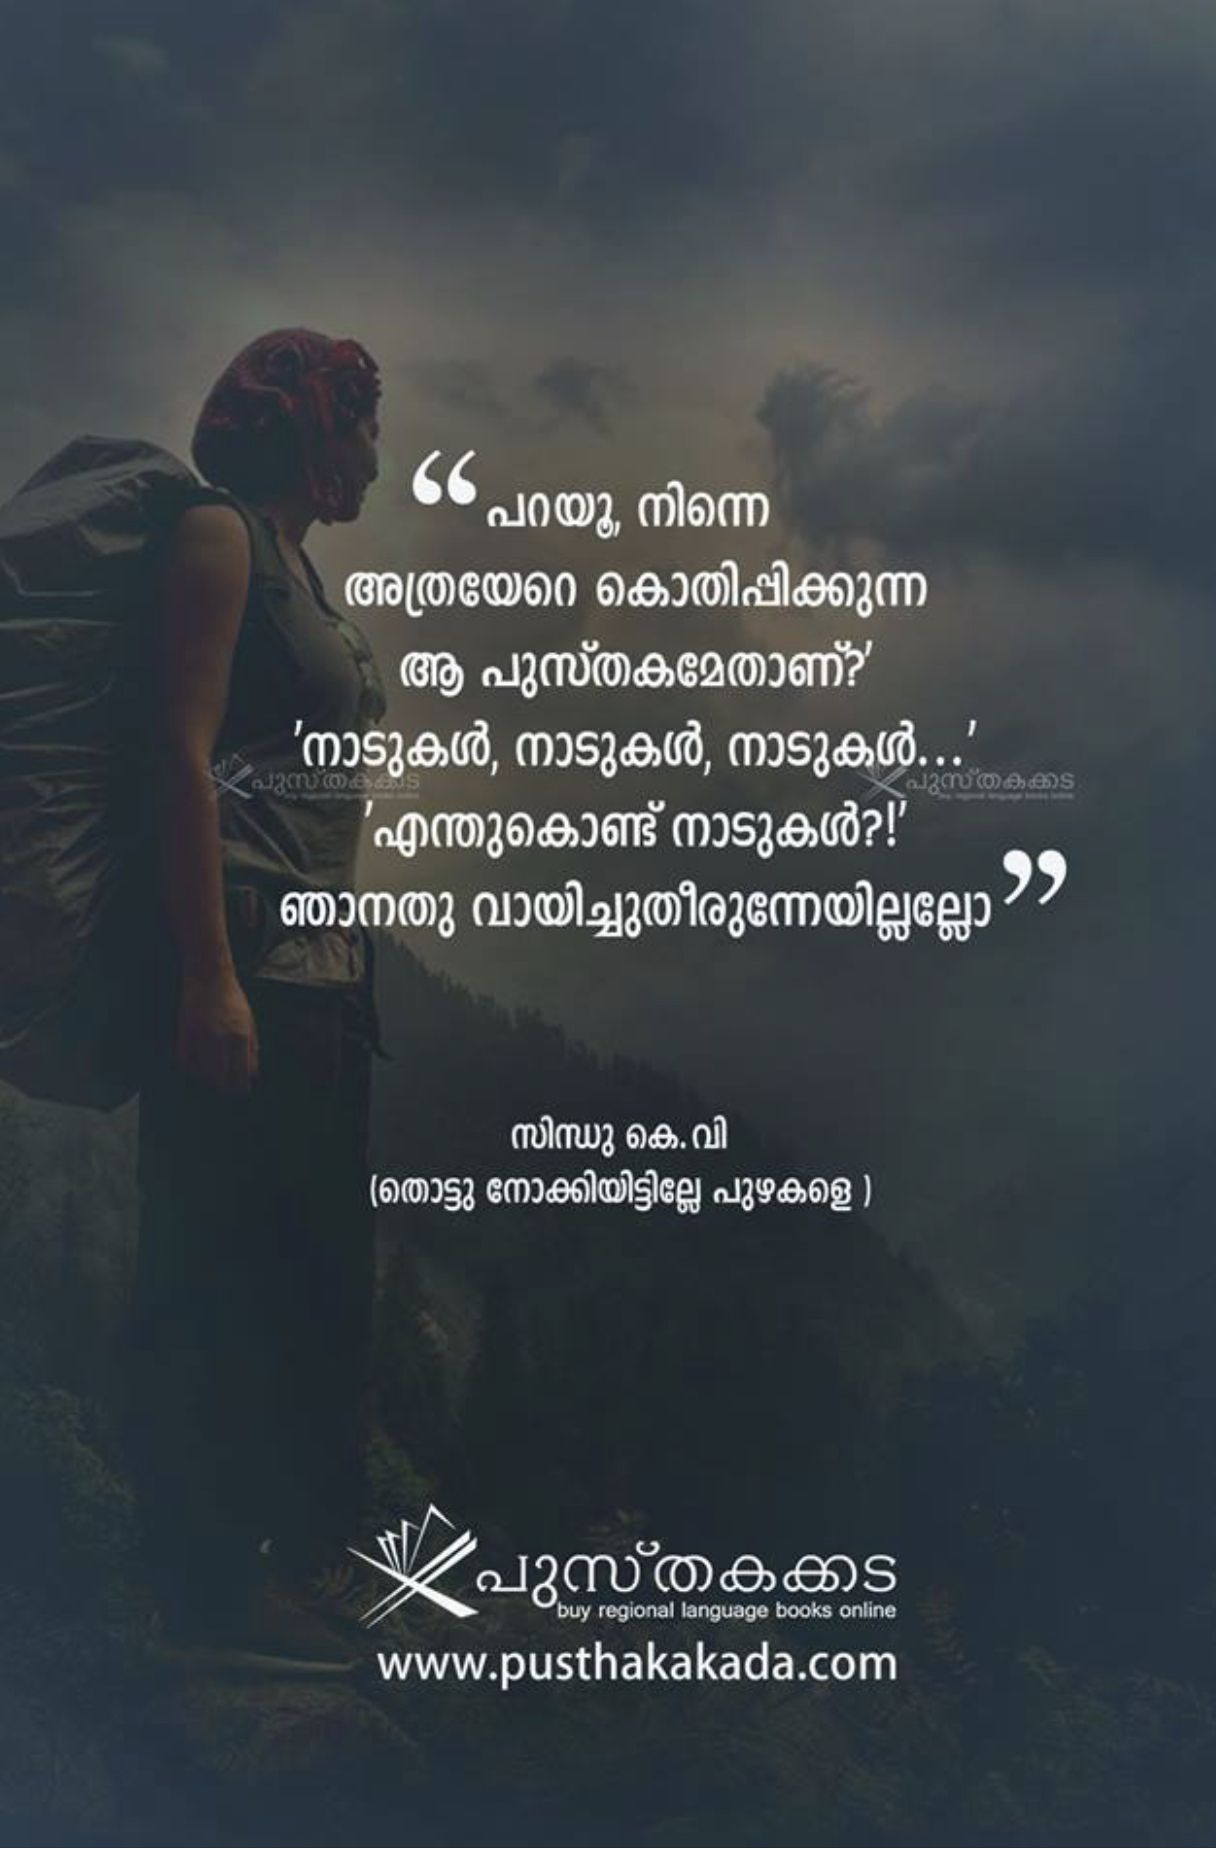 Pin by KicHuZz on മലയാളം Malayalam quotes, Confidence